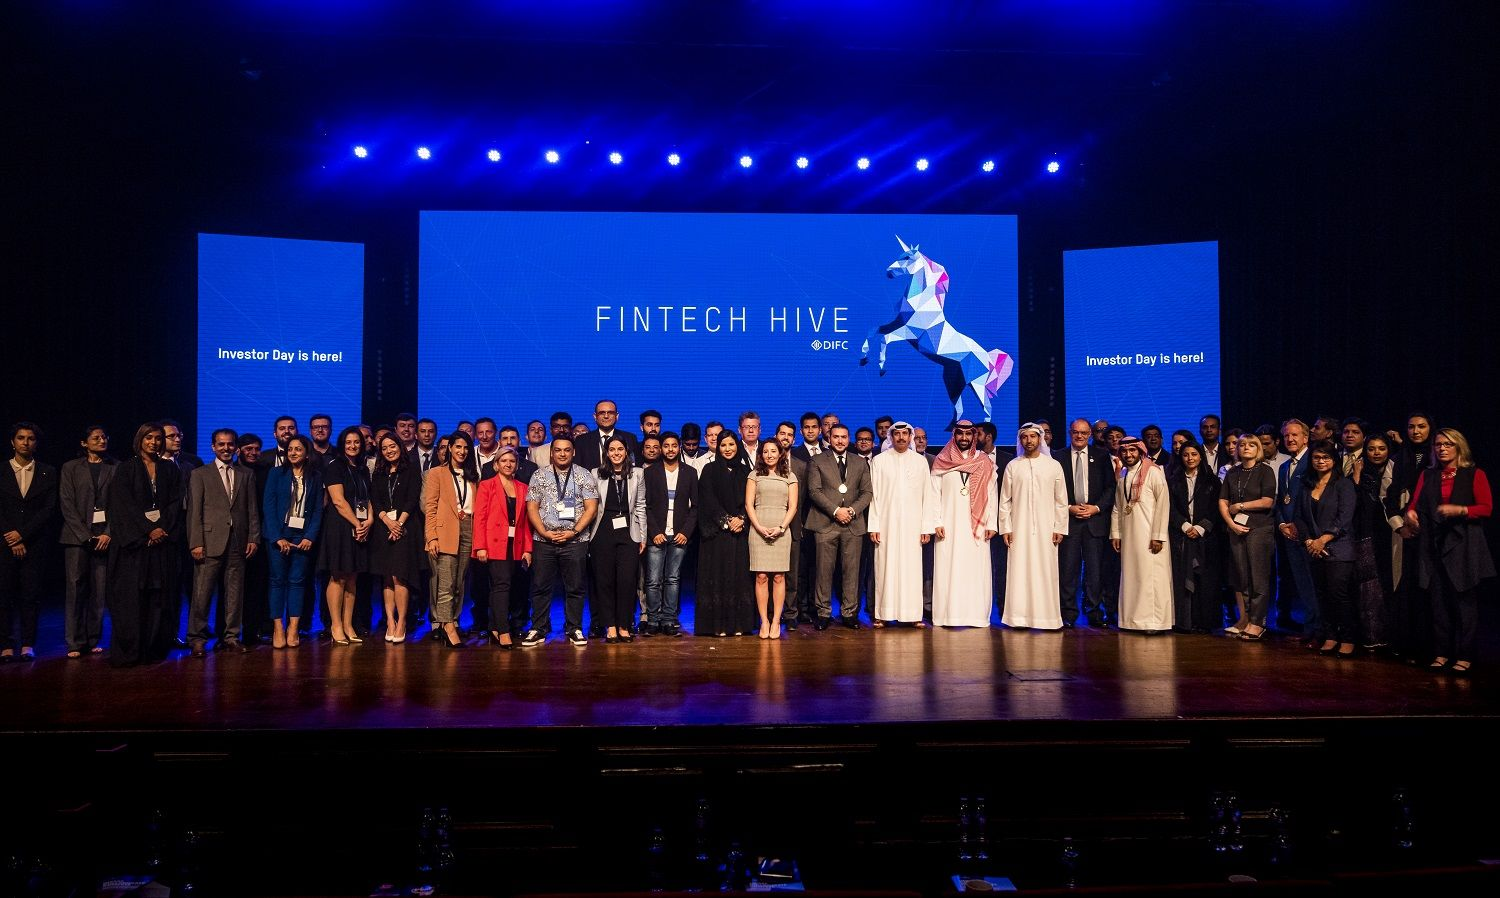 Fintech Hive to partner with Hong Kong's Cyberport